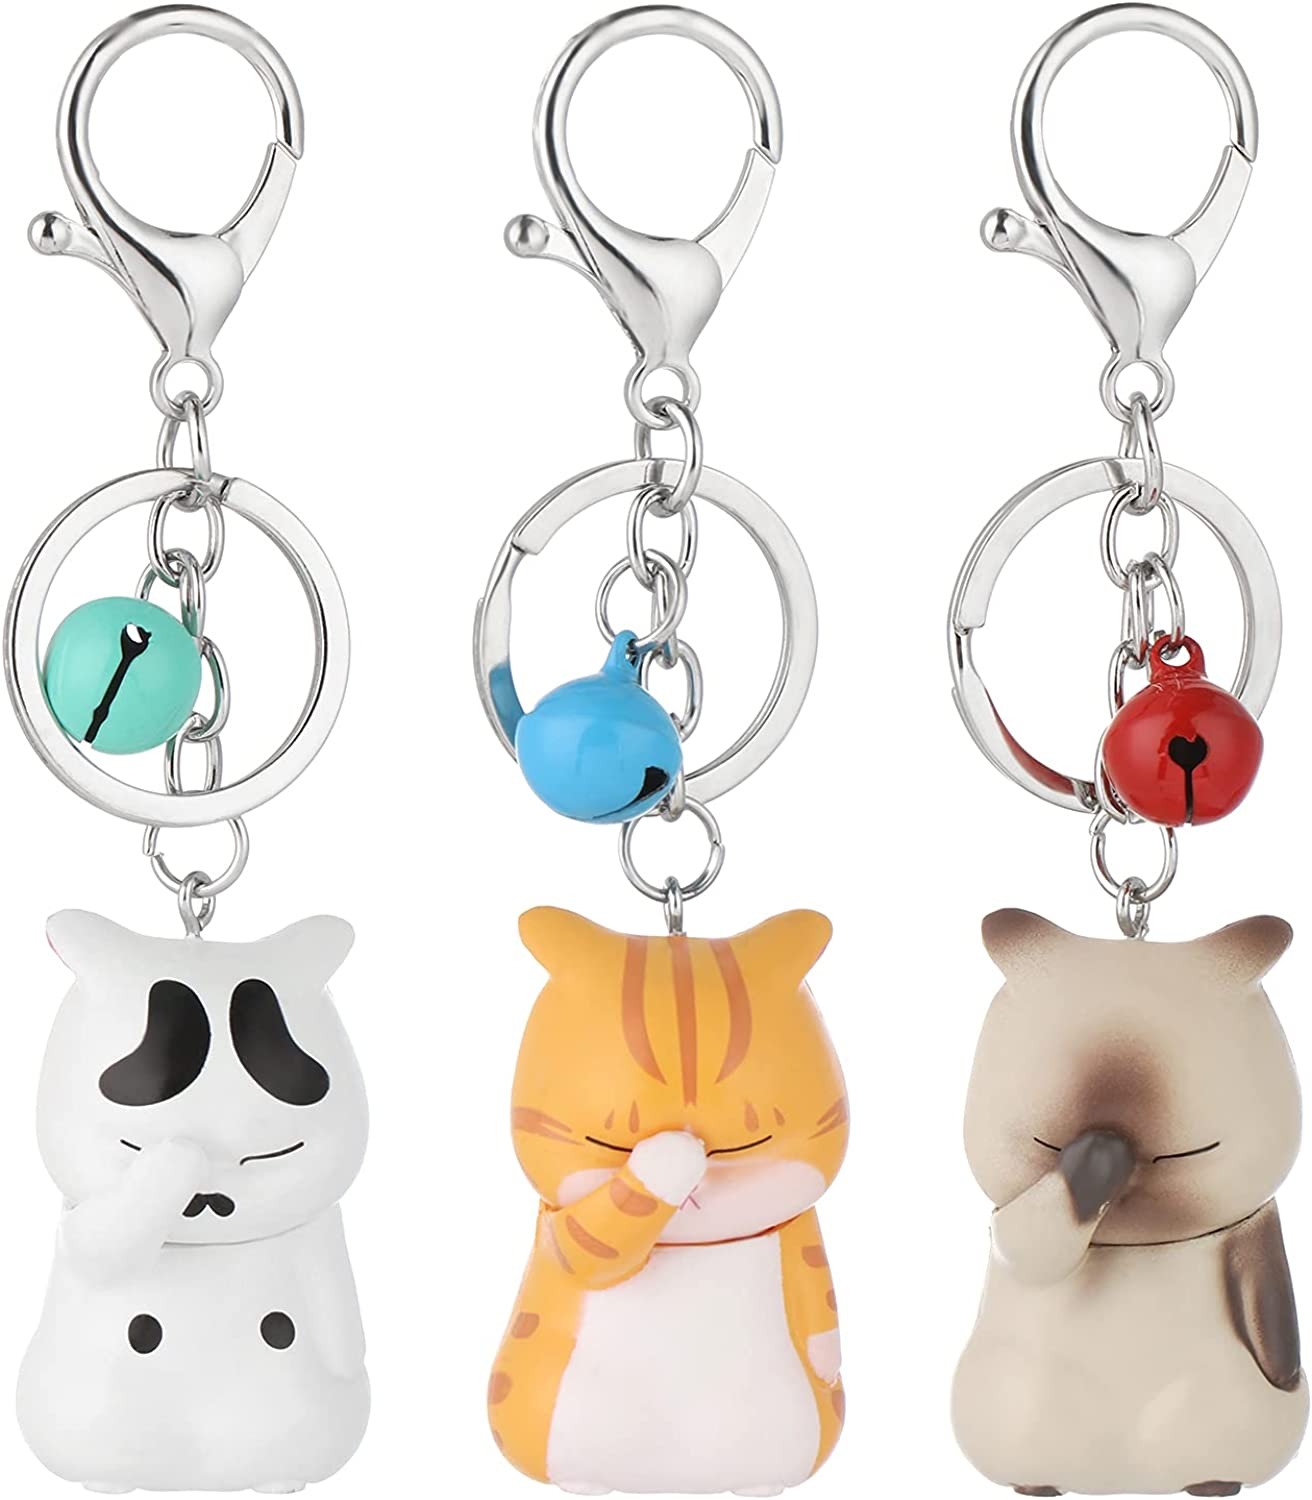 3PCS Cat Keychains with Bell,Cute Cartoon Cat Key Ring,White Grey Orange Cat,Durable Keyring for Handbags Purses Bags Belts